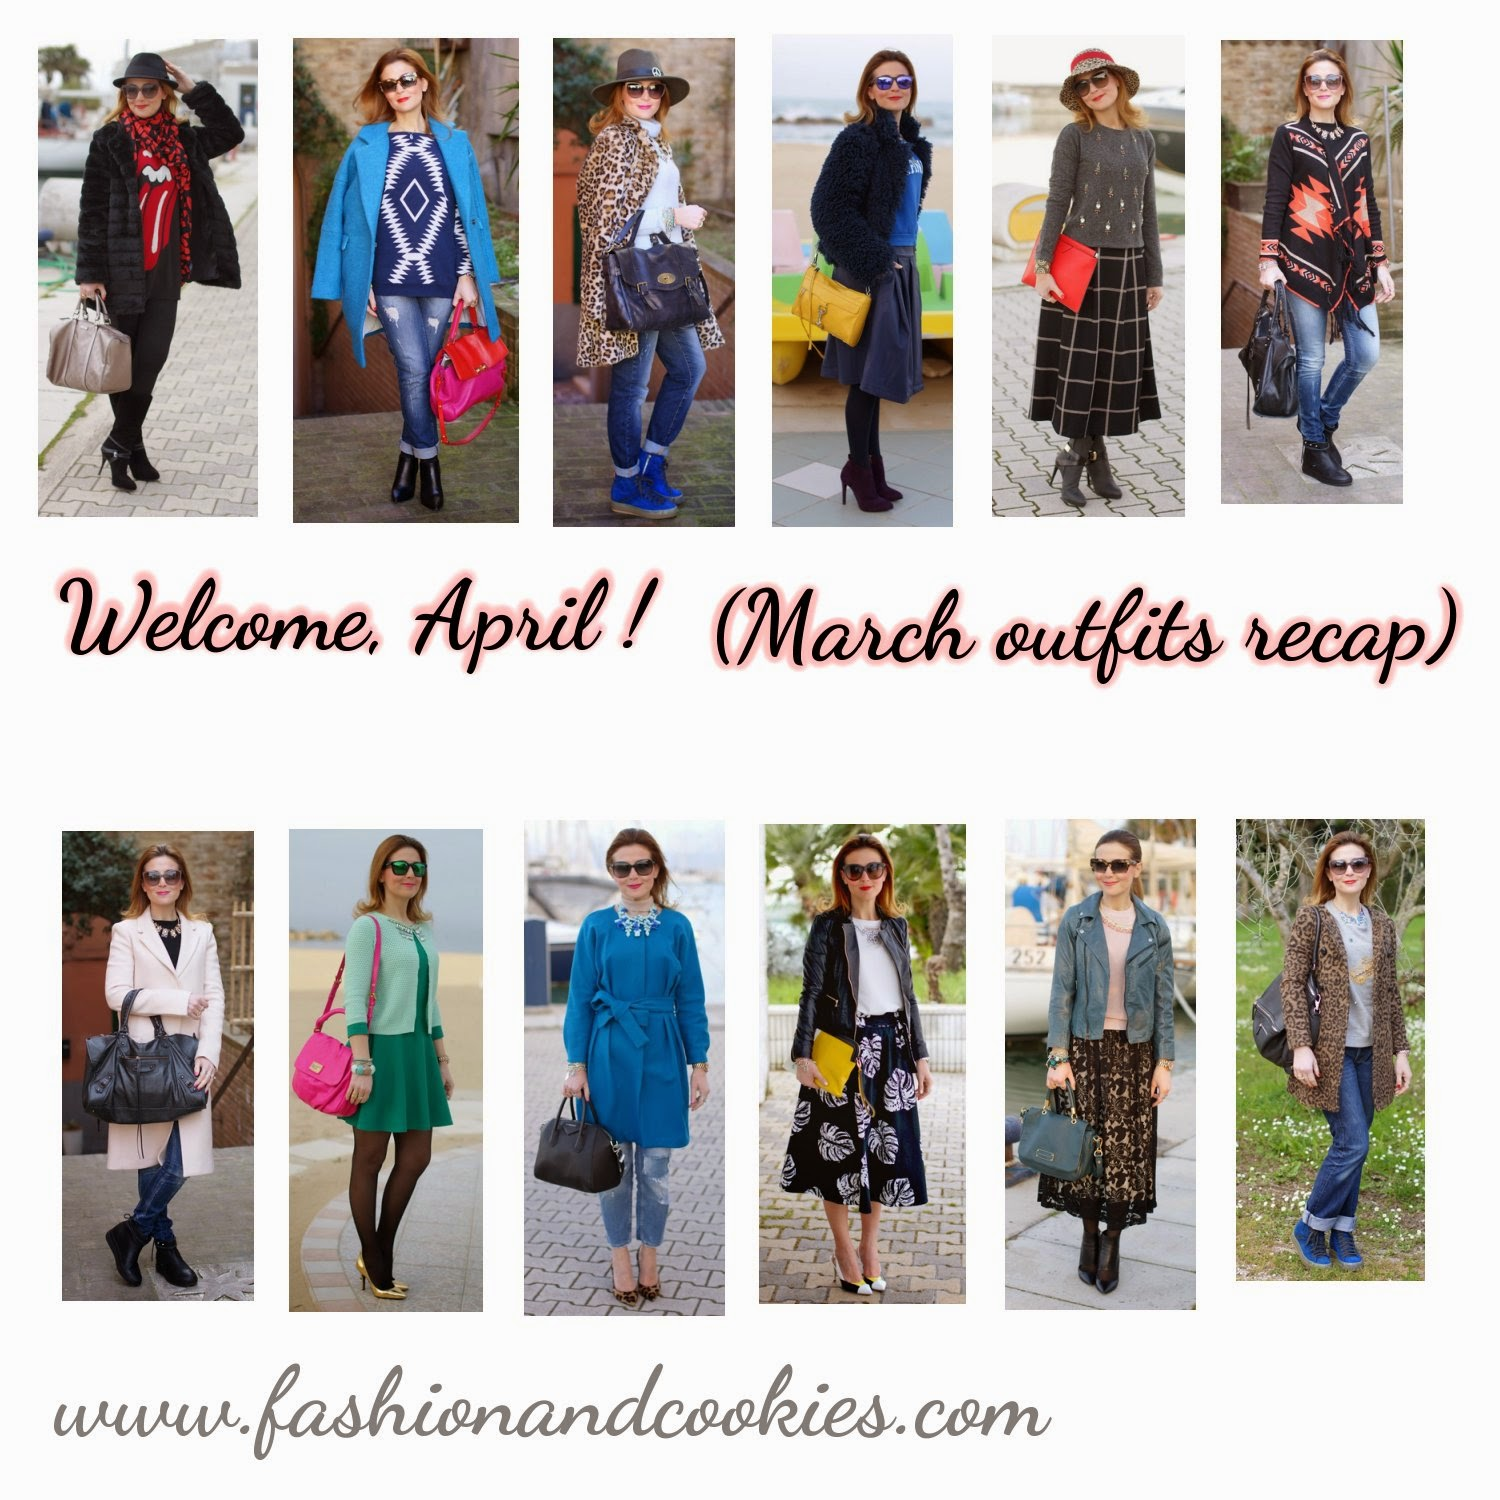 welcome april, march 2014 outfits recap, Fashion and Cookies, fashion blogger